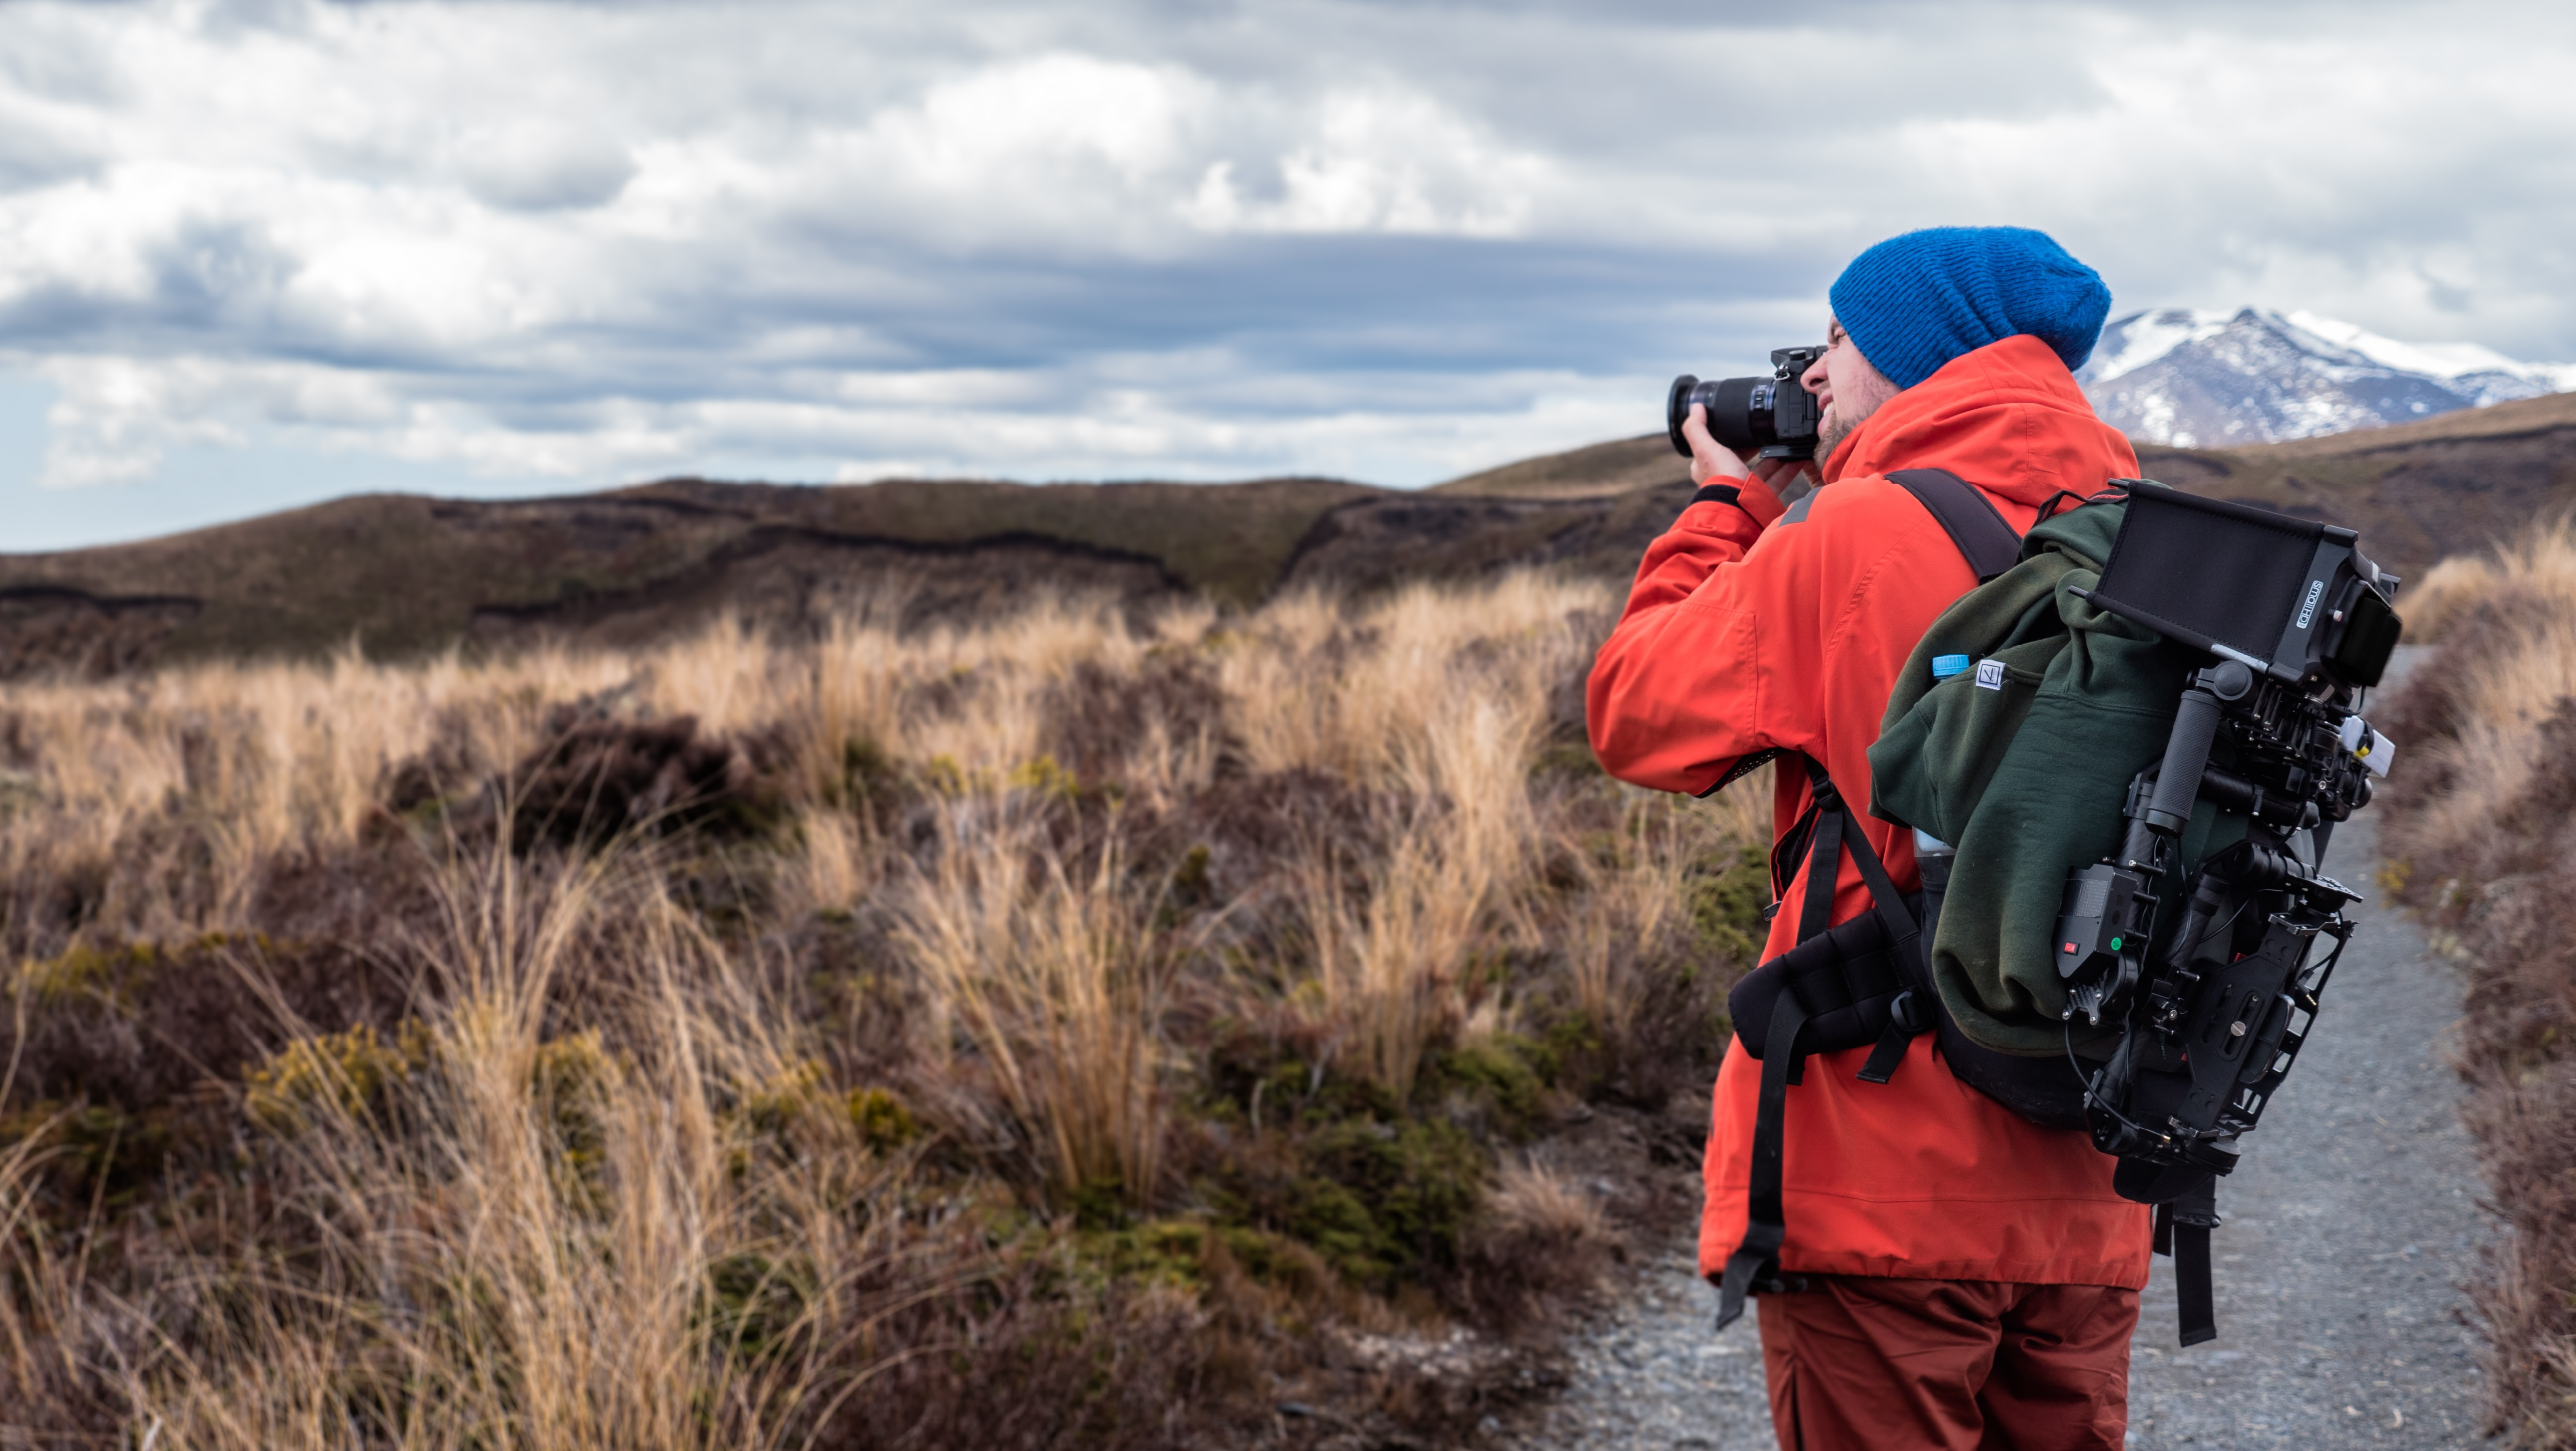 A man with photography equipment strapped to his back takes pictures of the a grassfield in the mountains